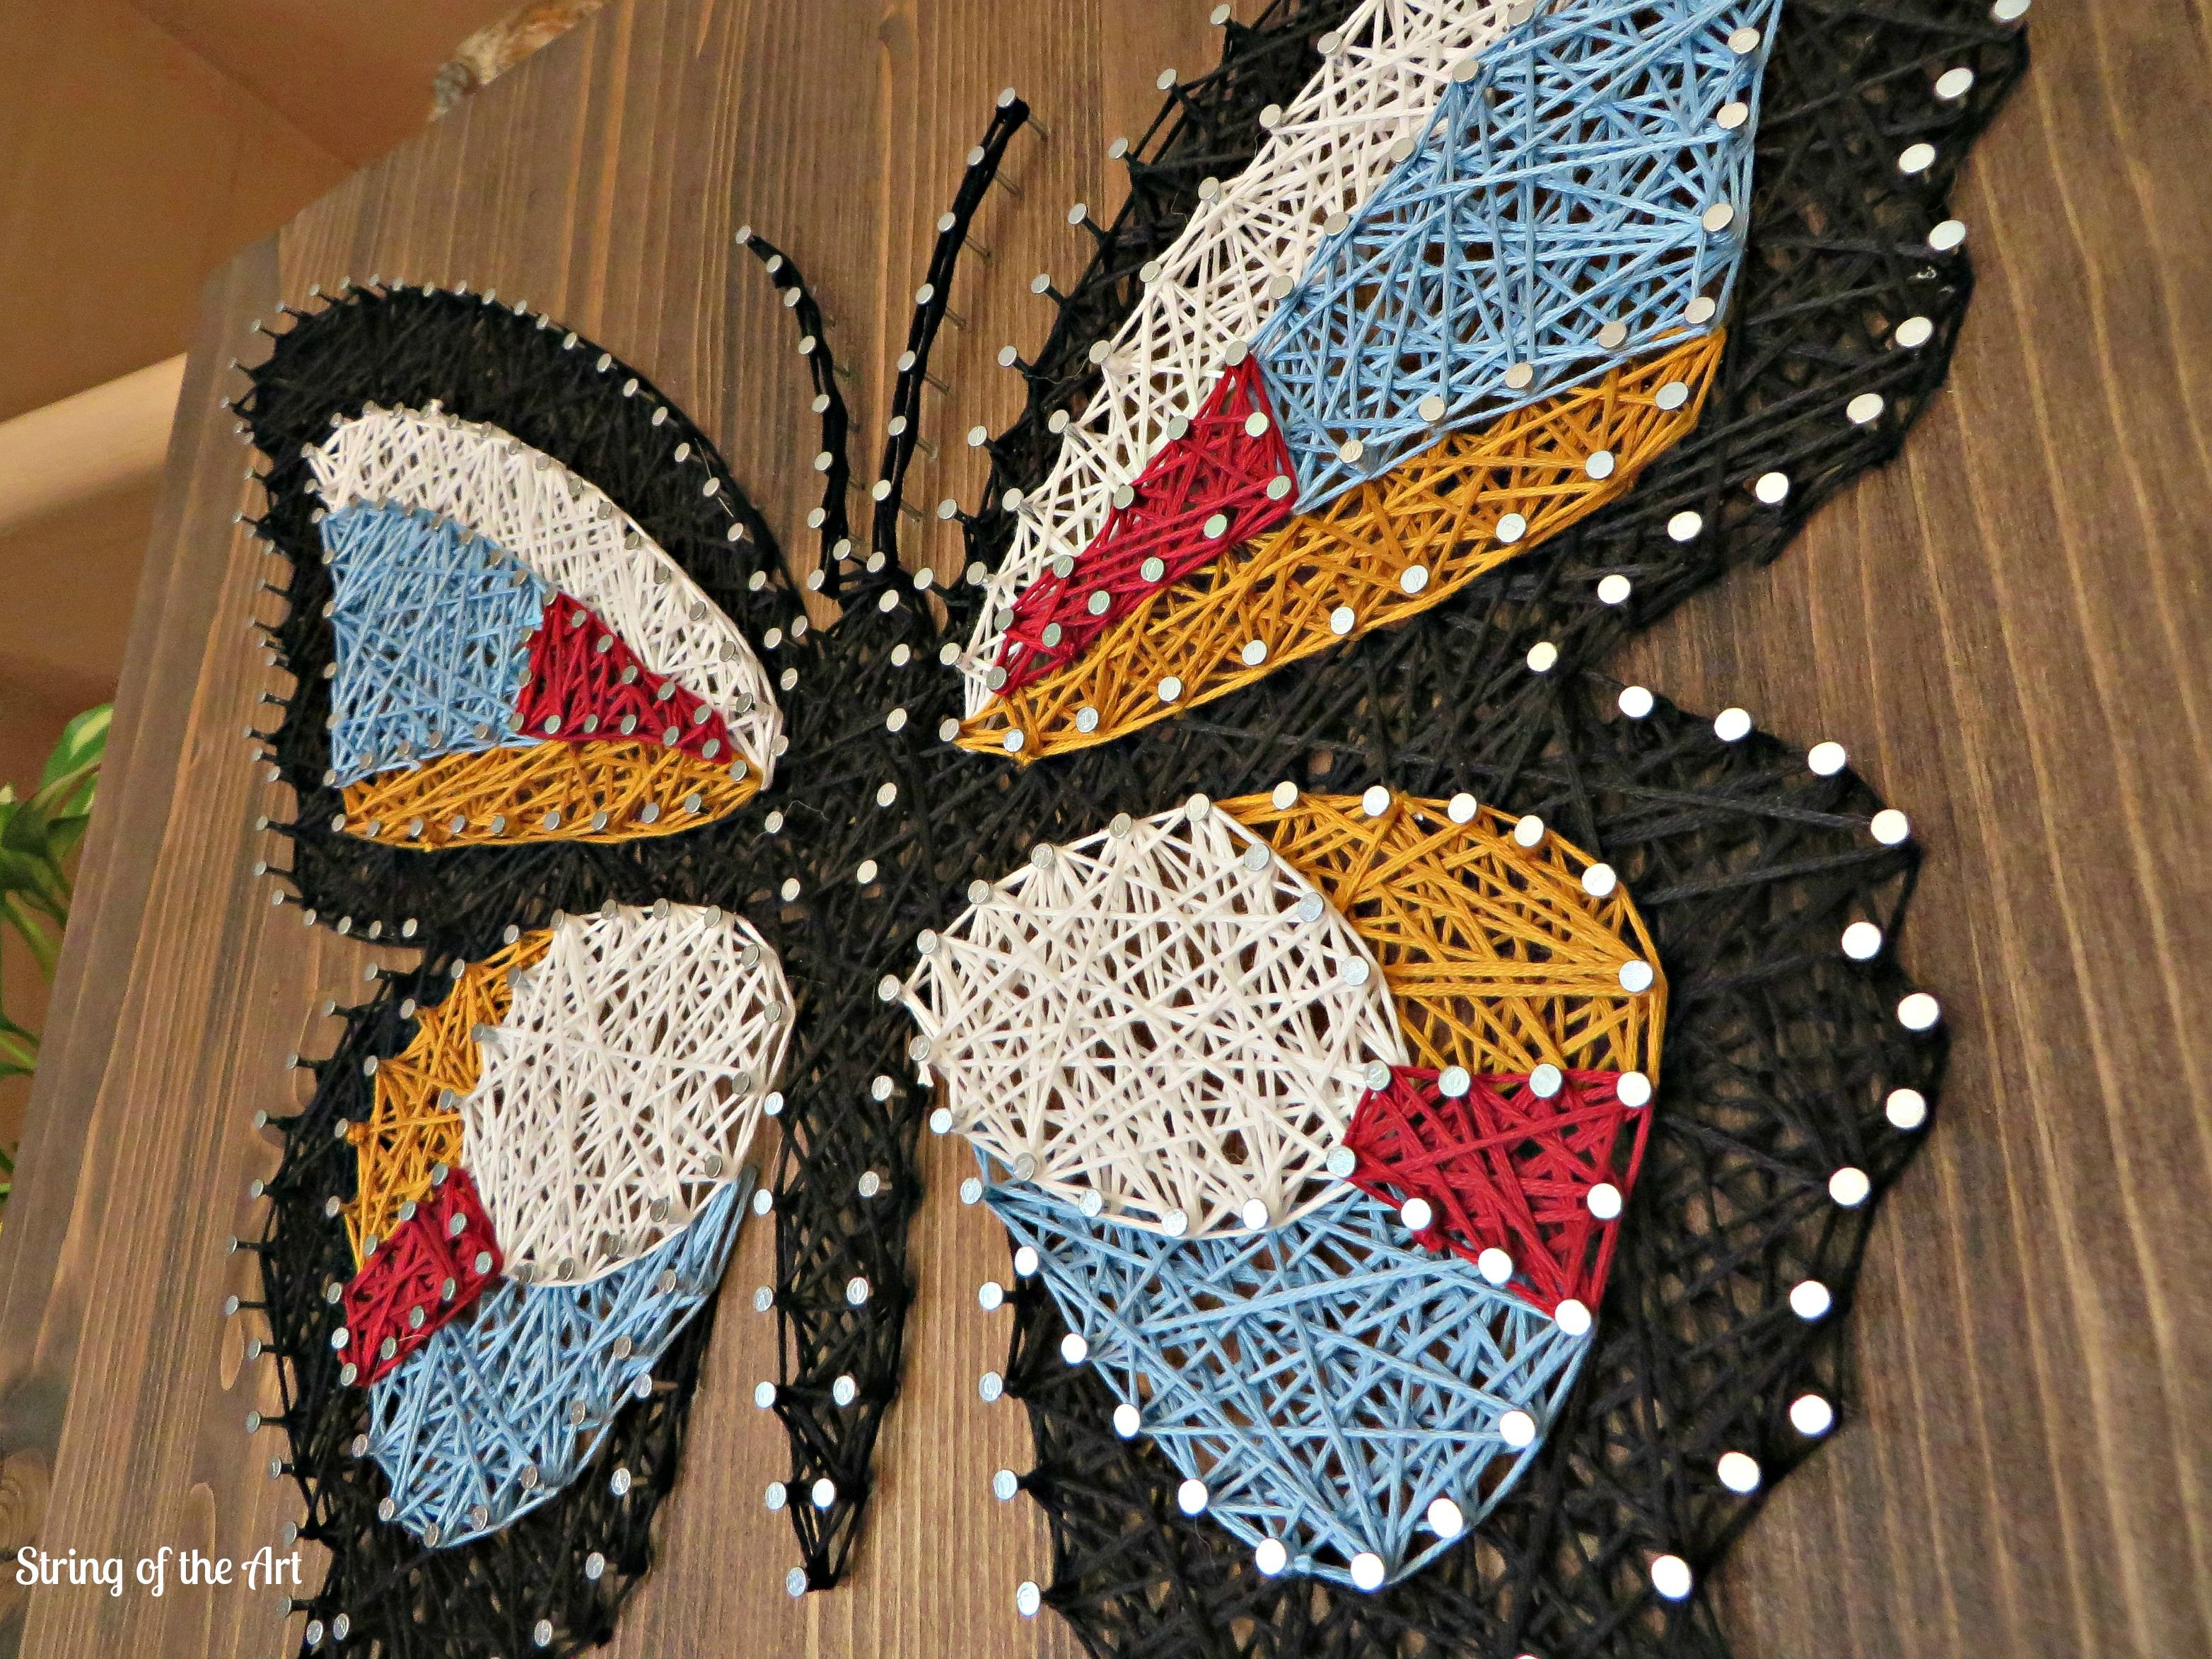 String Art Diy Crafts Kit Save 10 Off The Purchase Price